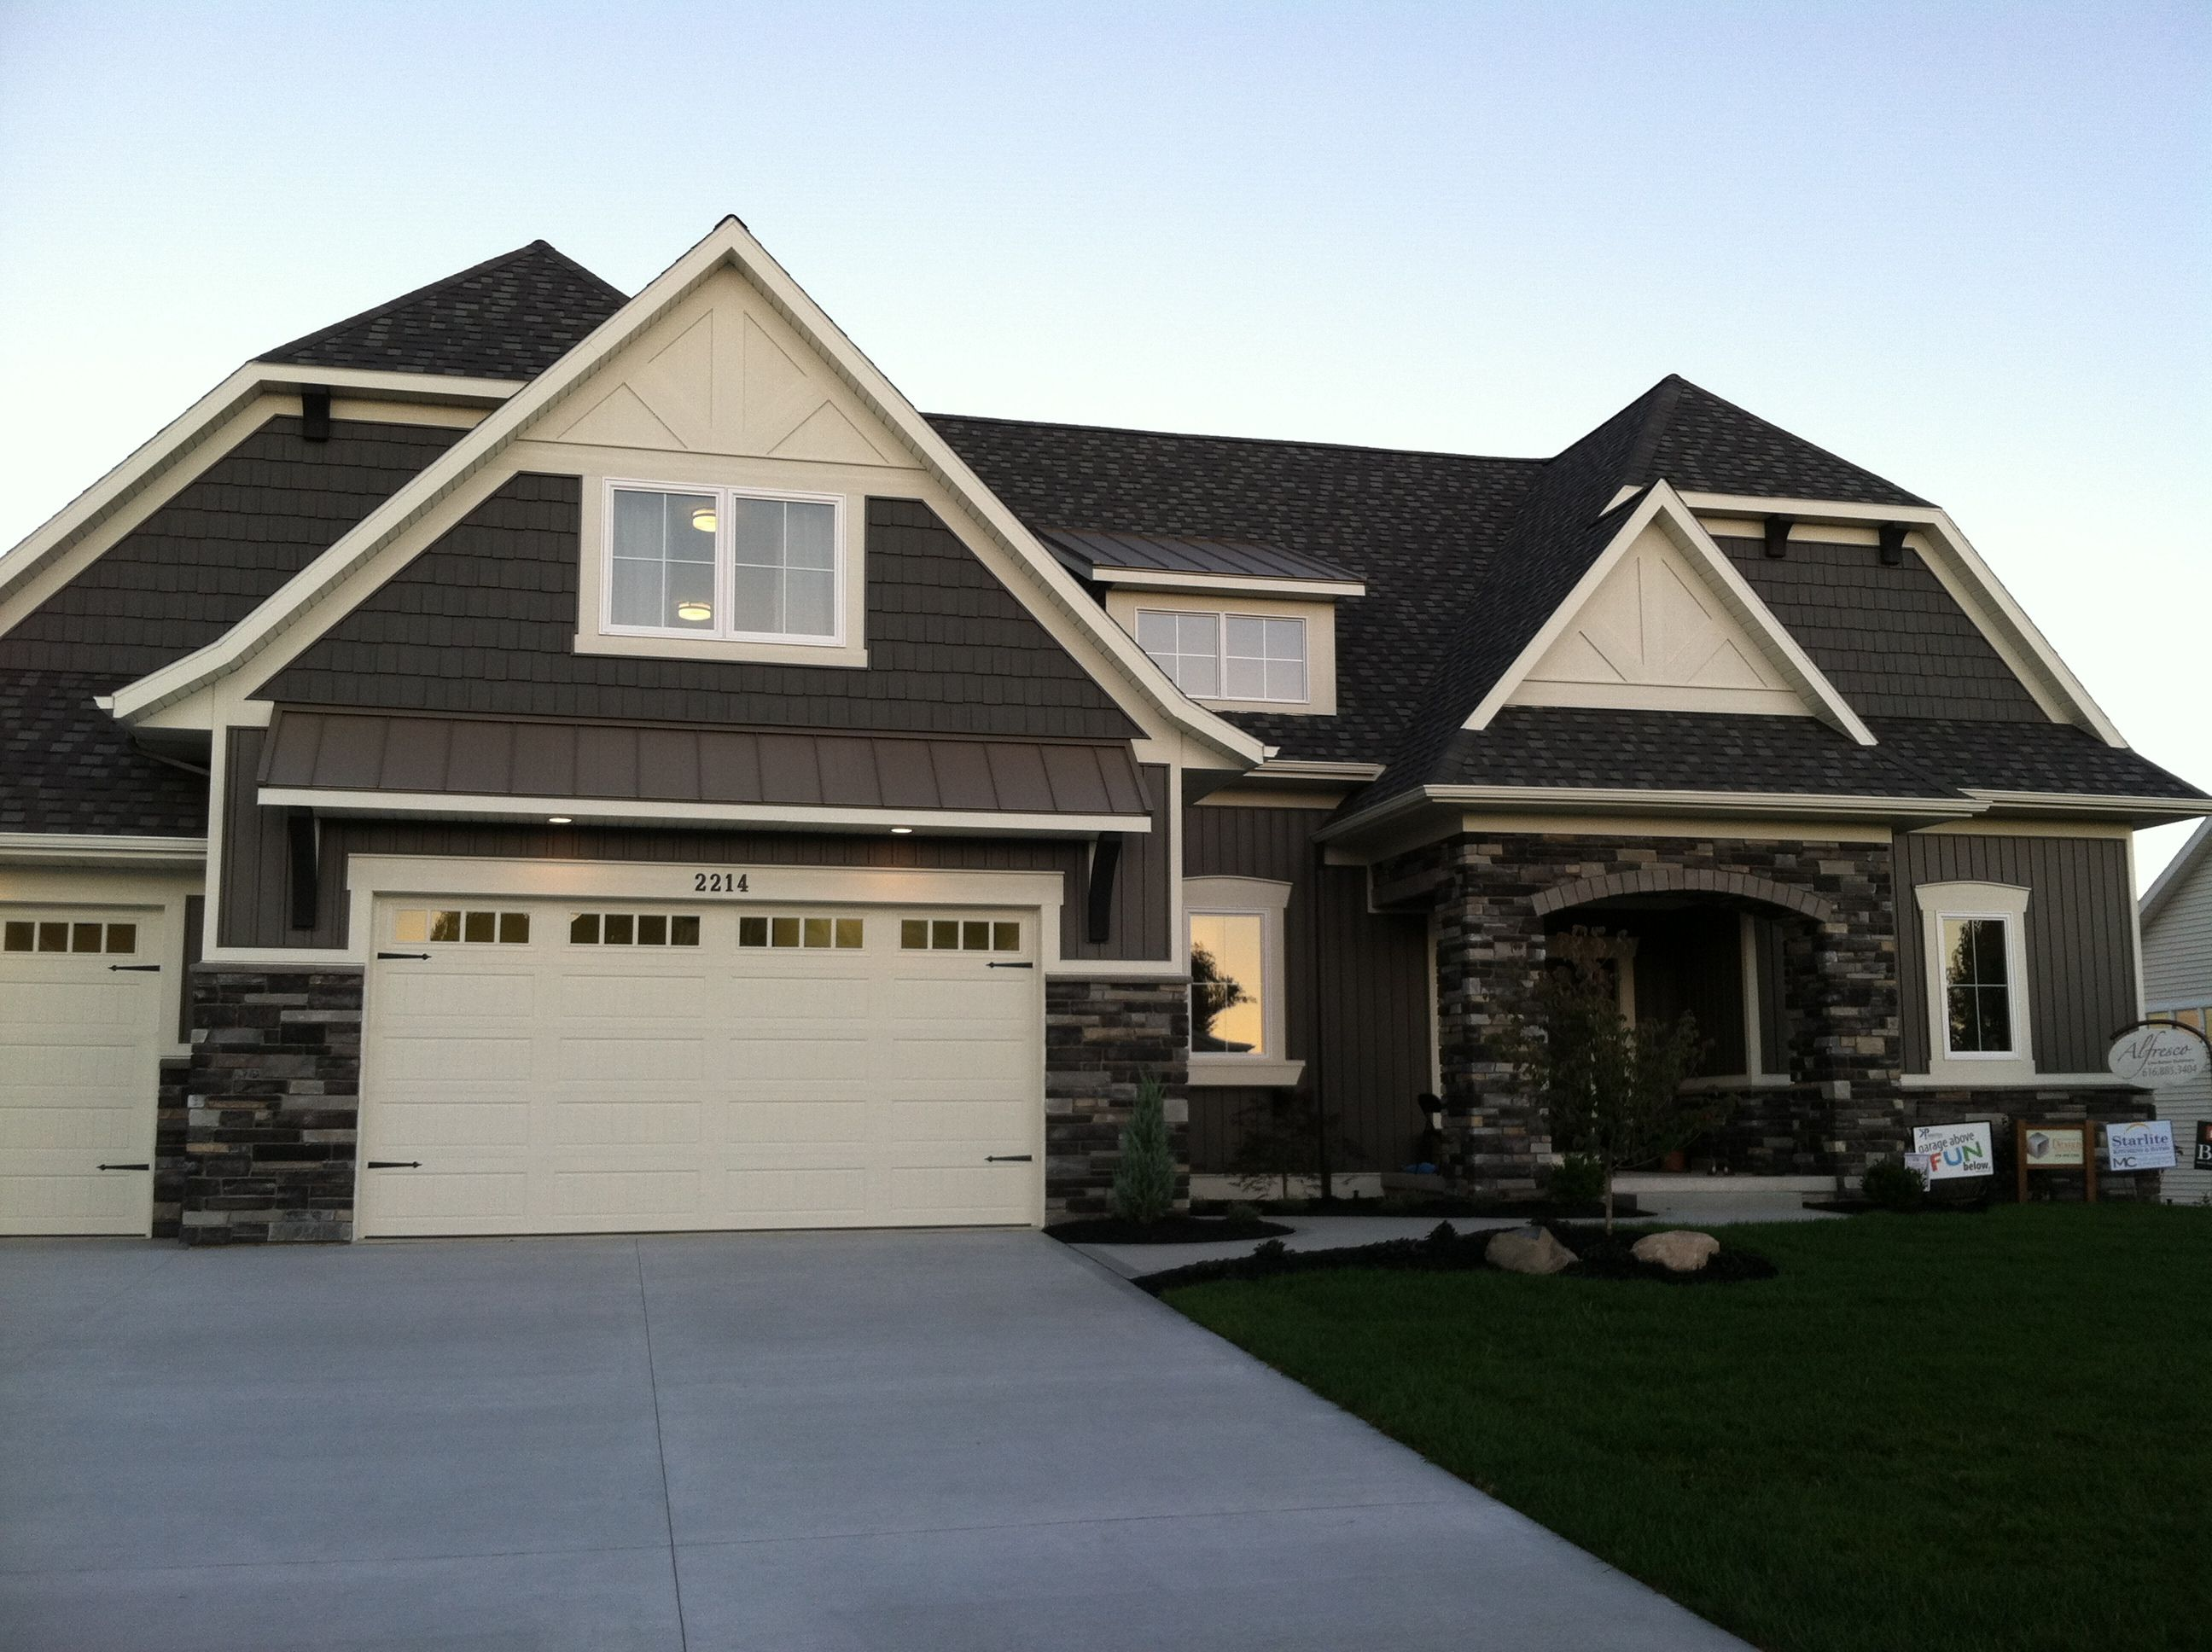 Gray exterior stone color scheme house exterior - Good color combinations for house exterior ...